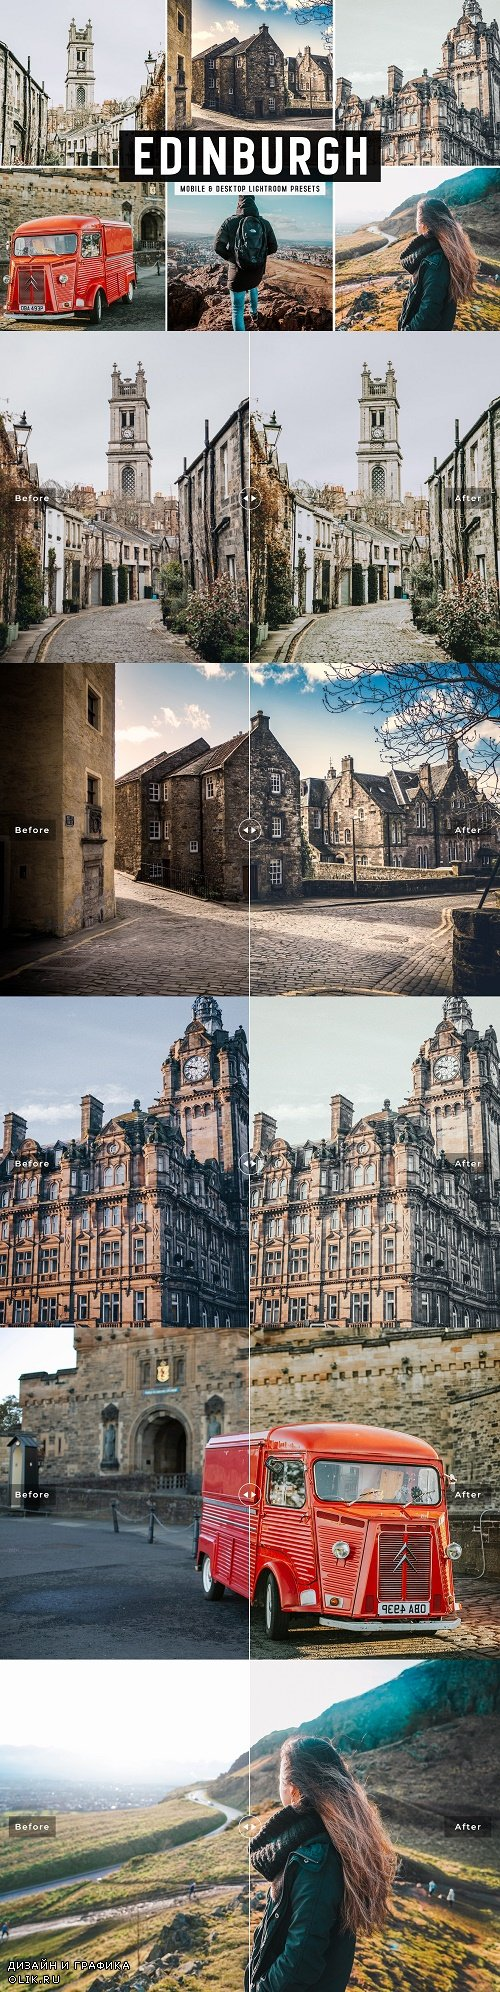 Edinburgh Pro Lightroom Presets - 3882405